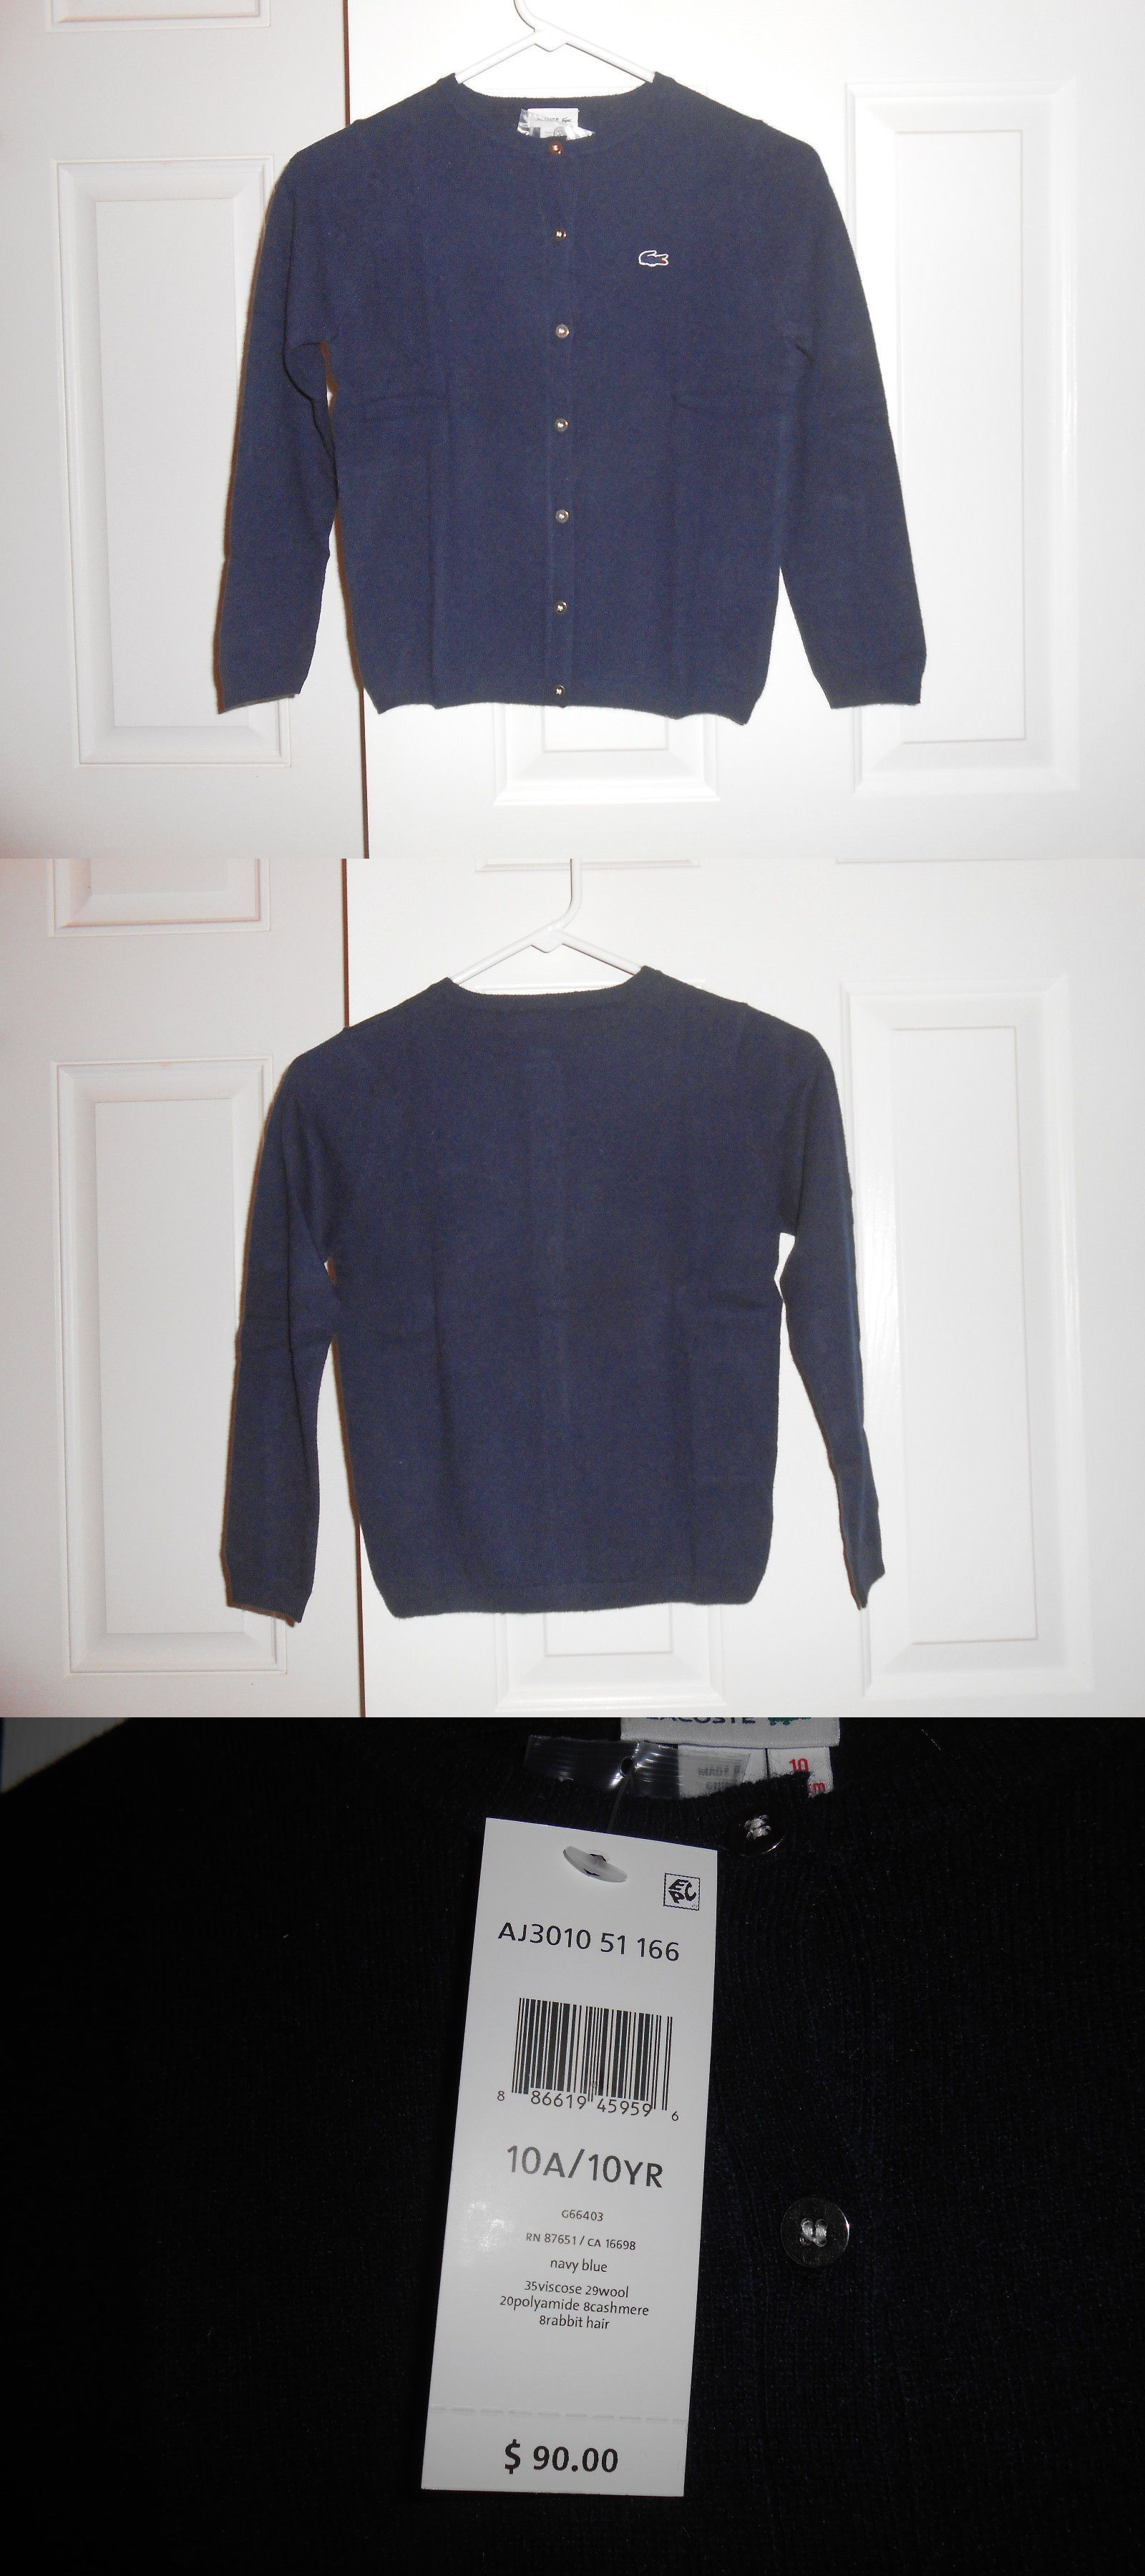 Sweaters 51946: Lacoste Navy Blue Cardigan For Boy Size 10 Nwt $90 ...